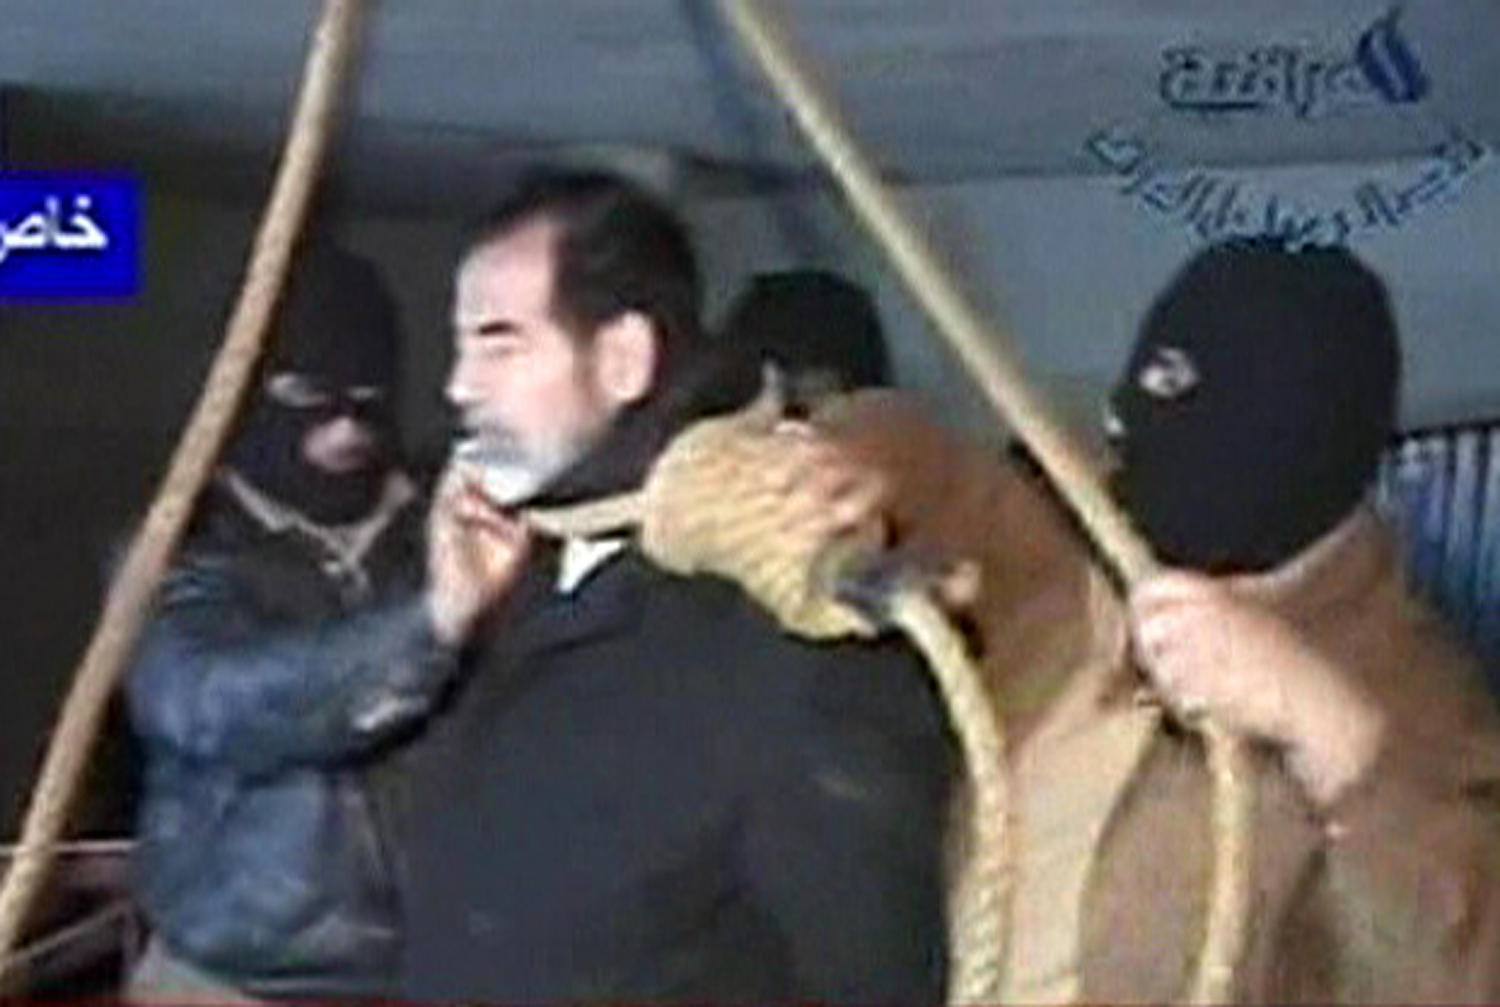 Footage from Al Iraqiya television shows masked executioners putting a noose around former Iraqi President Saddam Hussein's neck moments before his hanging in Baghdad December 30, 2006. Saddam was hanged for crimes against humanity at dawn on Saturday, a dramatic, violent end for a leader who ruled Iraq by fear for three decades before he was toppled by a U.S. invasion four years ago.